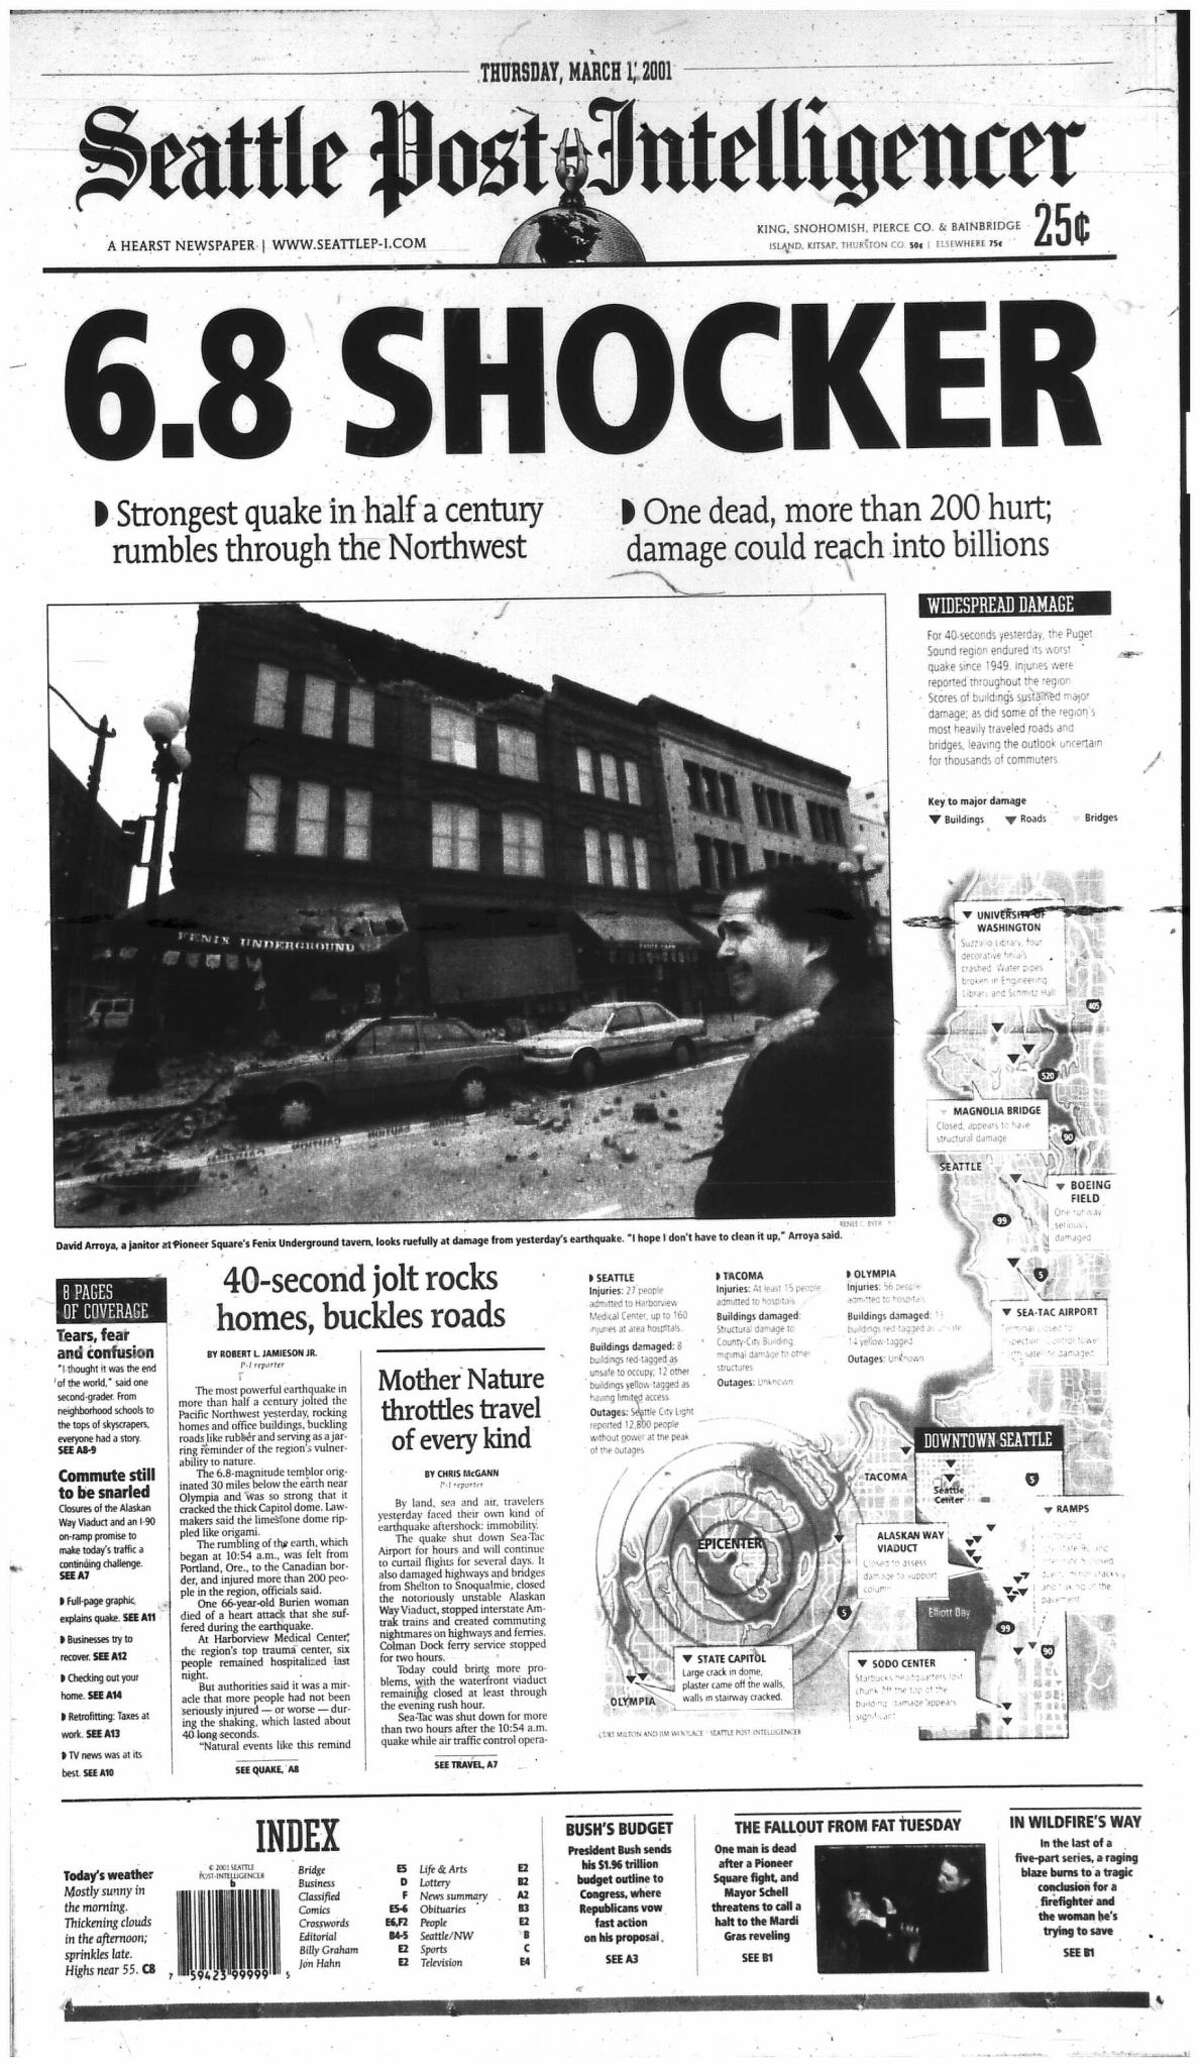 The March 1, 2001 edition of the P-I illustrated the 6.8 Nisqually Earthquake that shook Western Washington. Look only as far as the forthcoming tear-down of the Alaskan Way Viaduct to see its continued reverberations. Keep clicking for photos of damage caused by the 2001 quake...